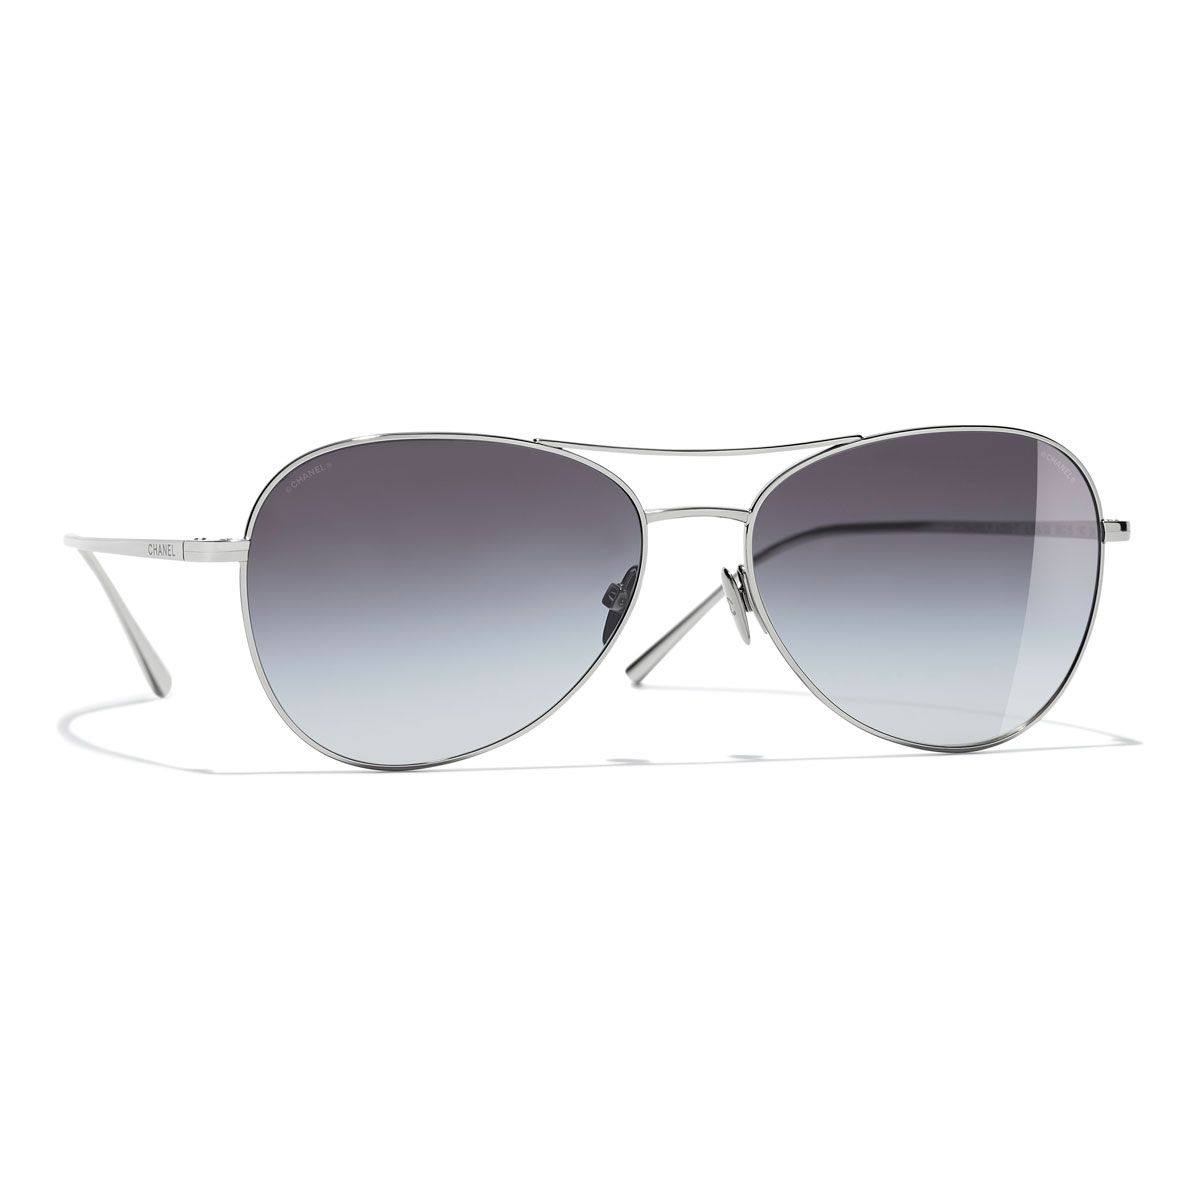 Pilot Sunglasses 487.5 Sunglasses